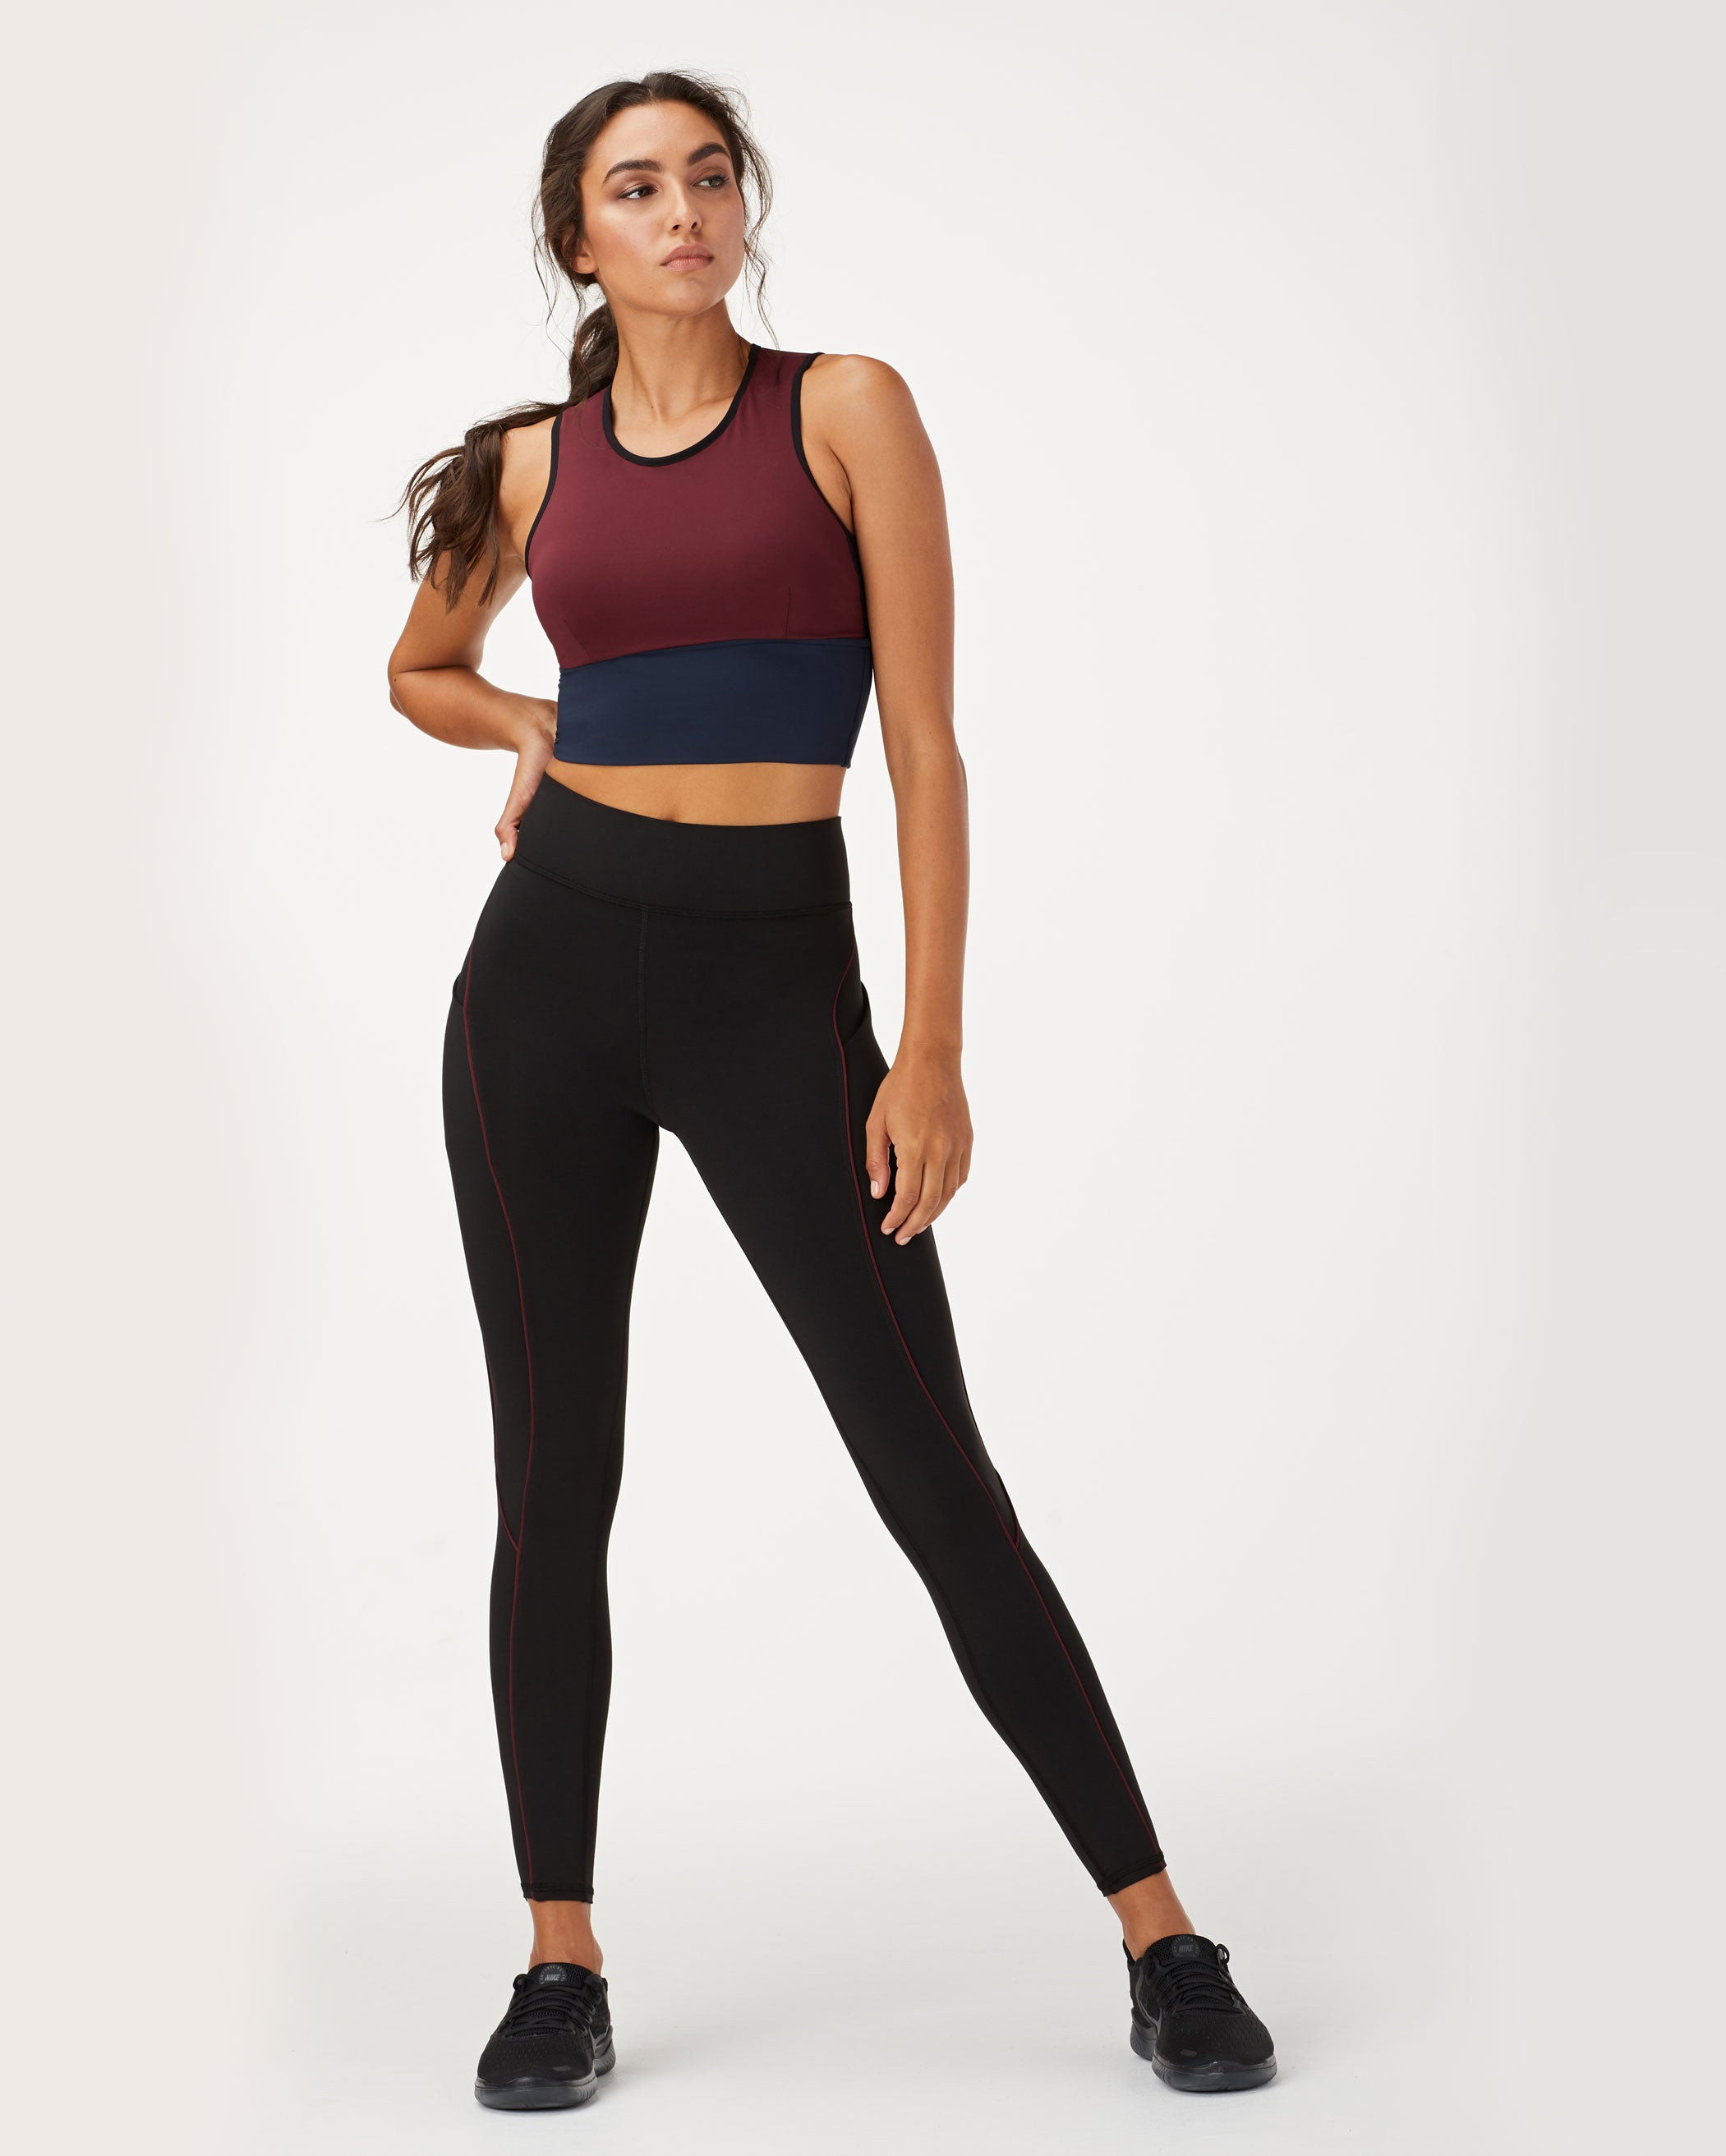 ignite-crop-top-wine-deep-sea-navy